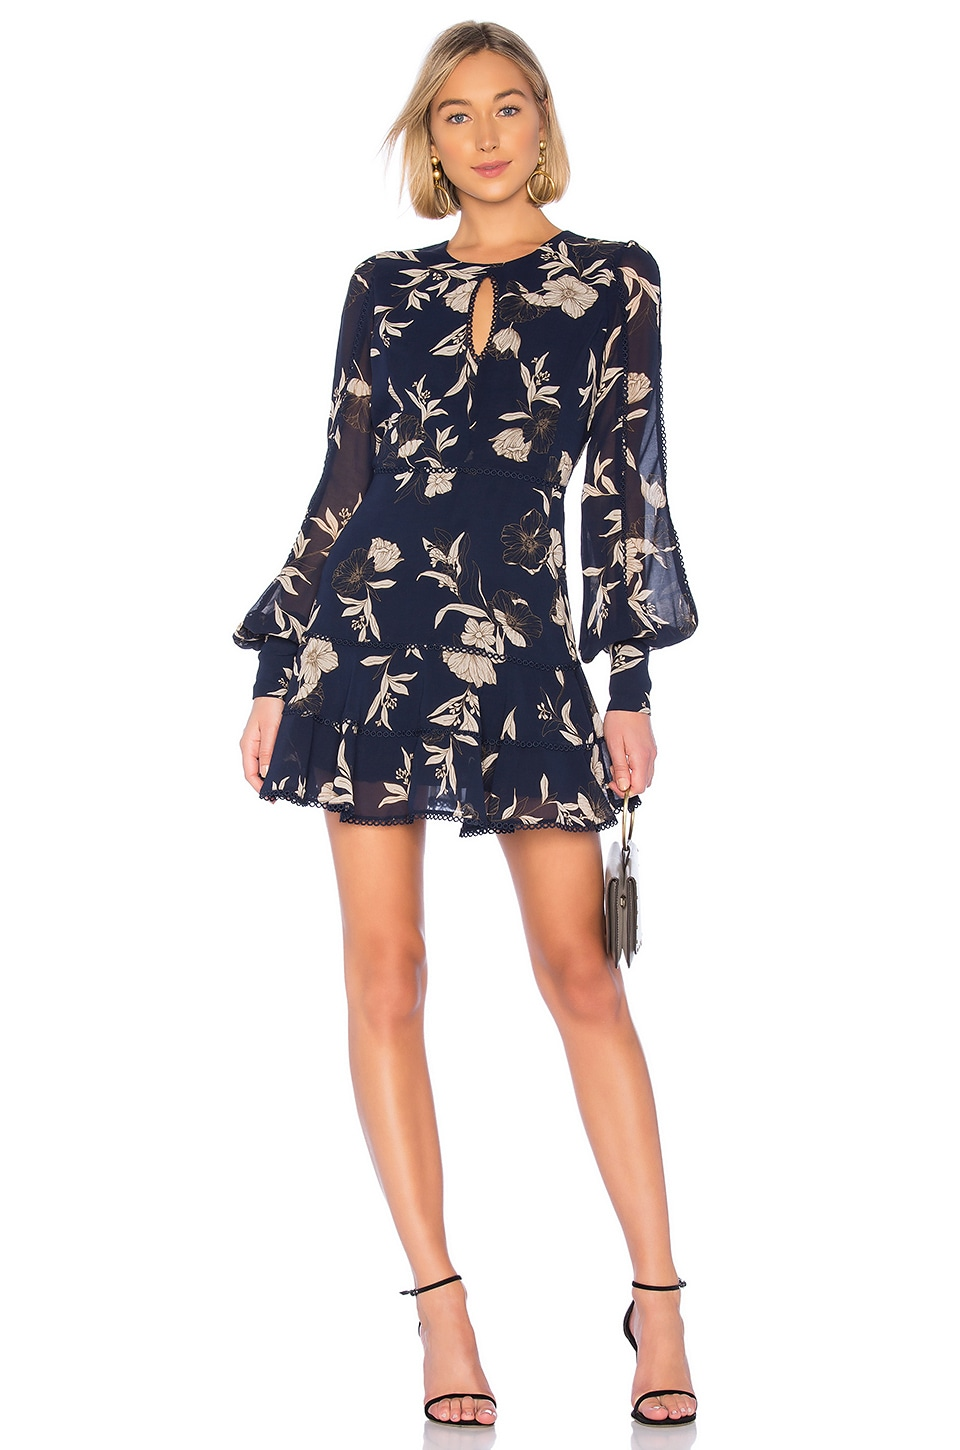 Bardot Tammy Dress in Navy Floral